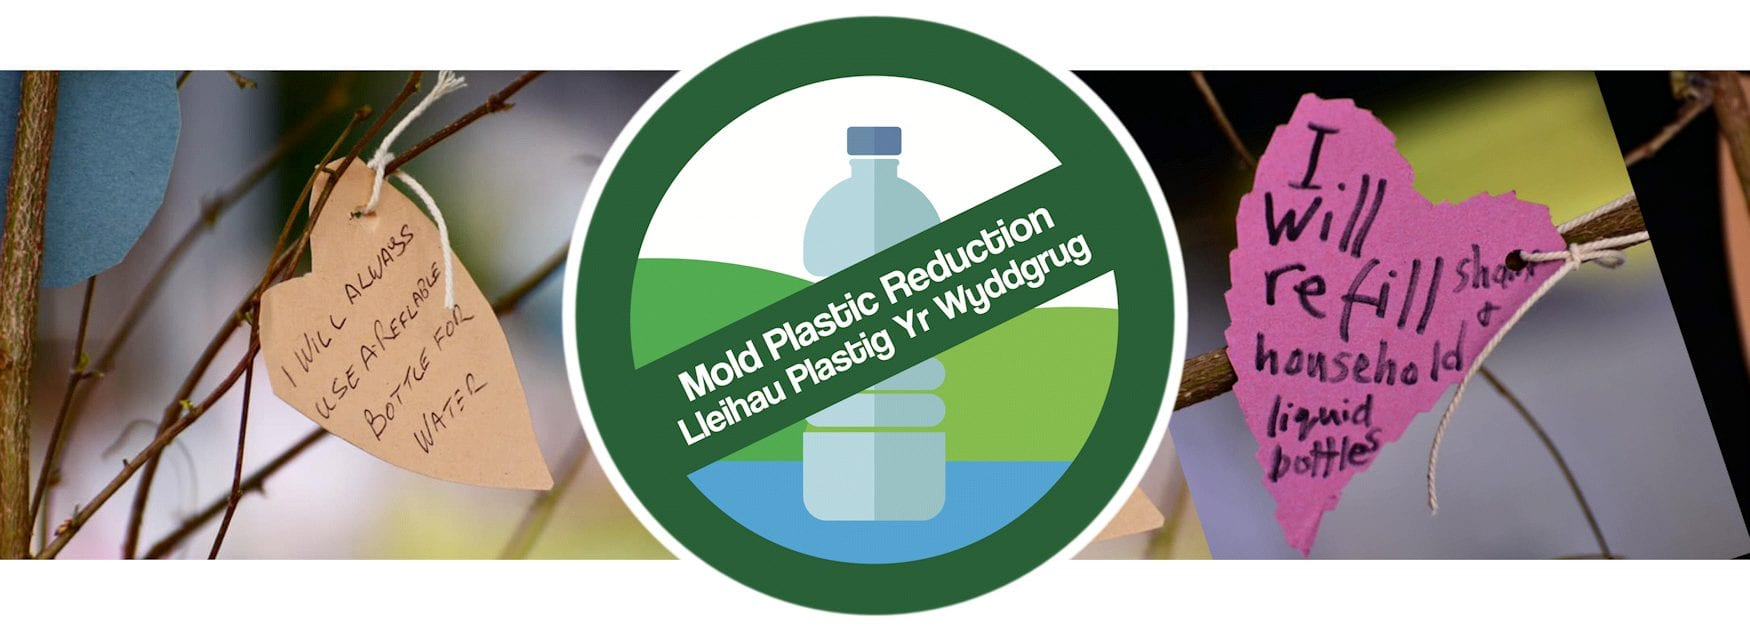 Header image for Household page showing pledges to use less plastic